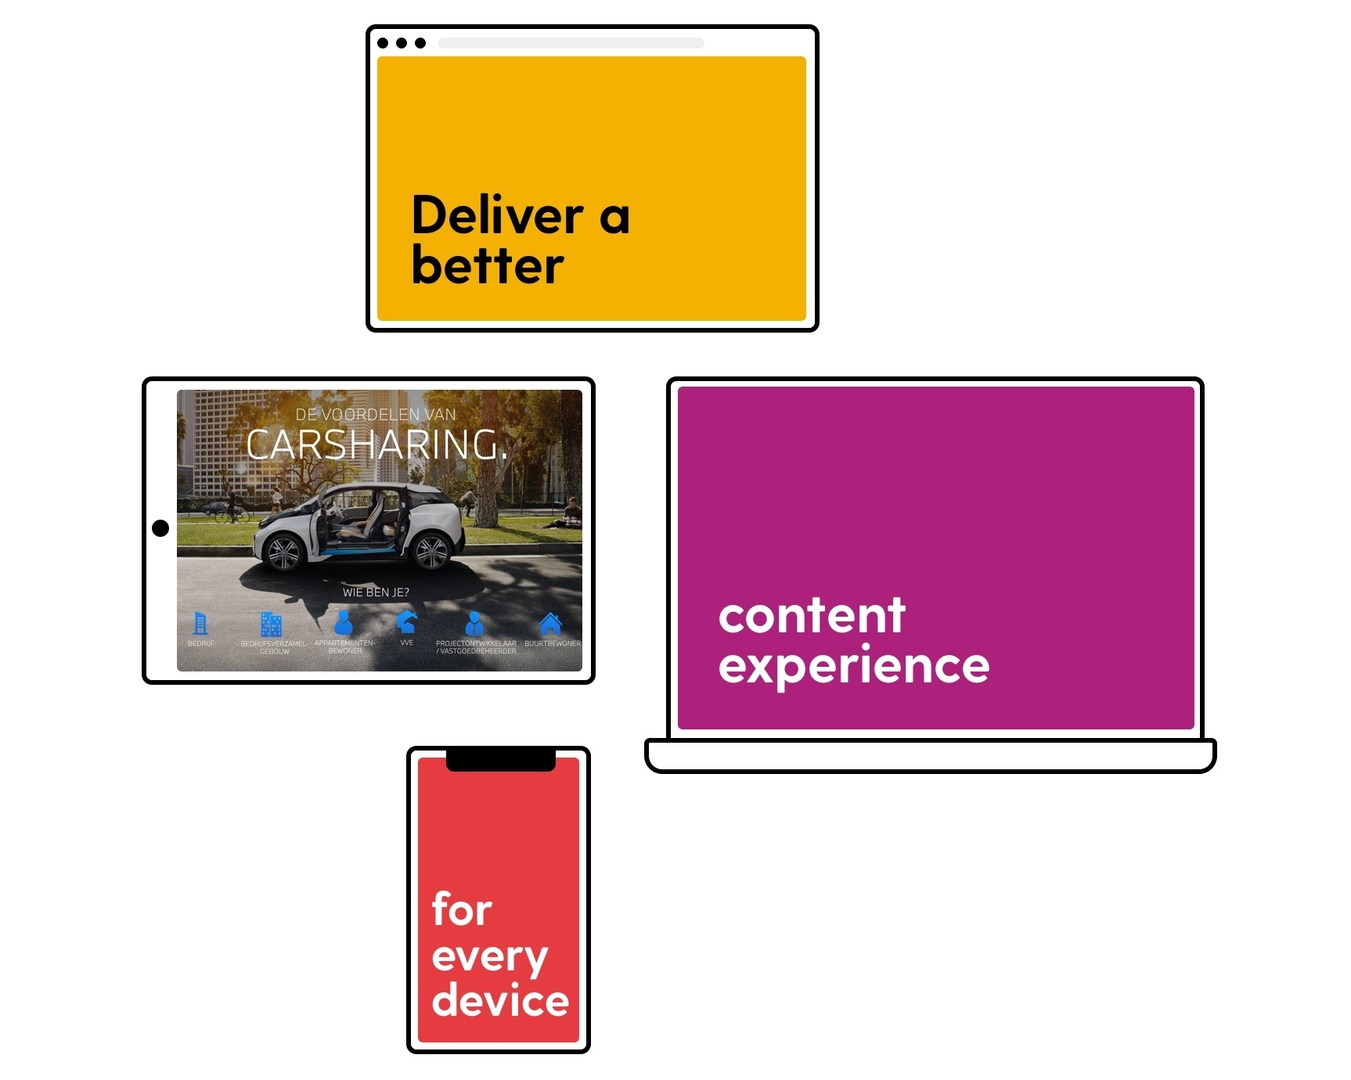 Deliver a better content experience for every device